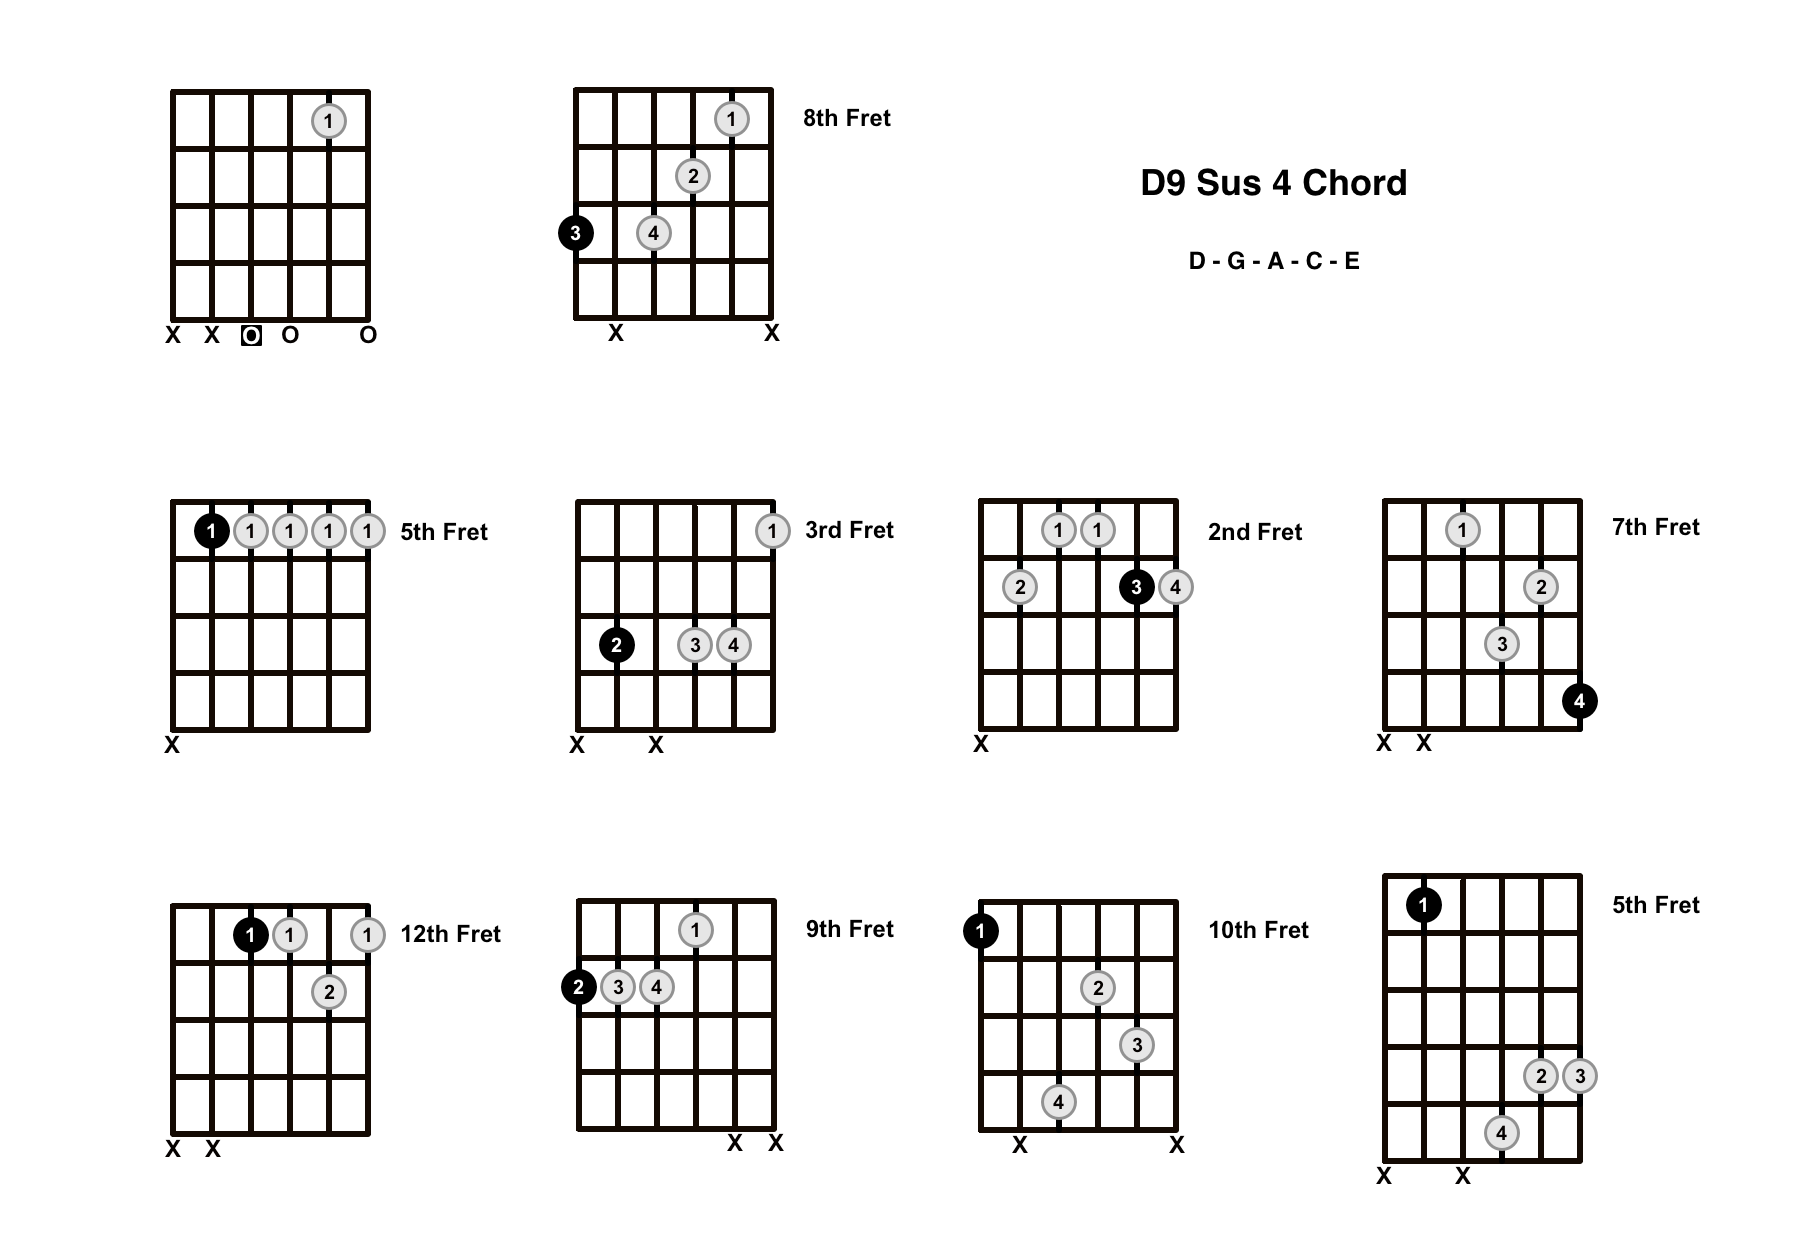 D9 Sus 4 Chord On The Guitar (D9 Suspended 4, C/D) – Diagrams, Finger Positions and Theory